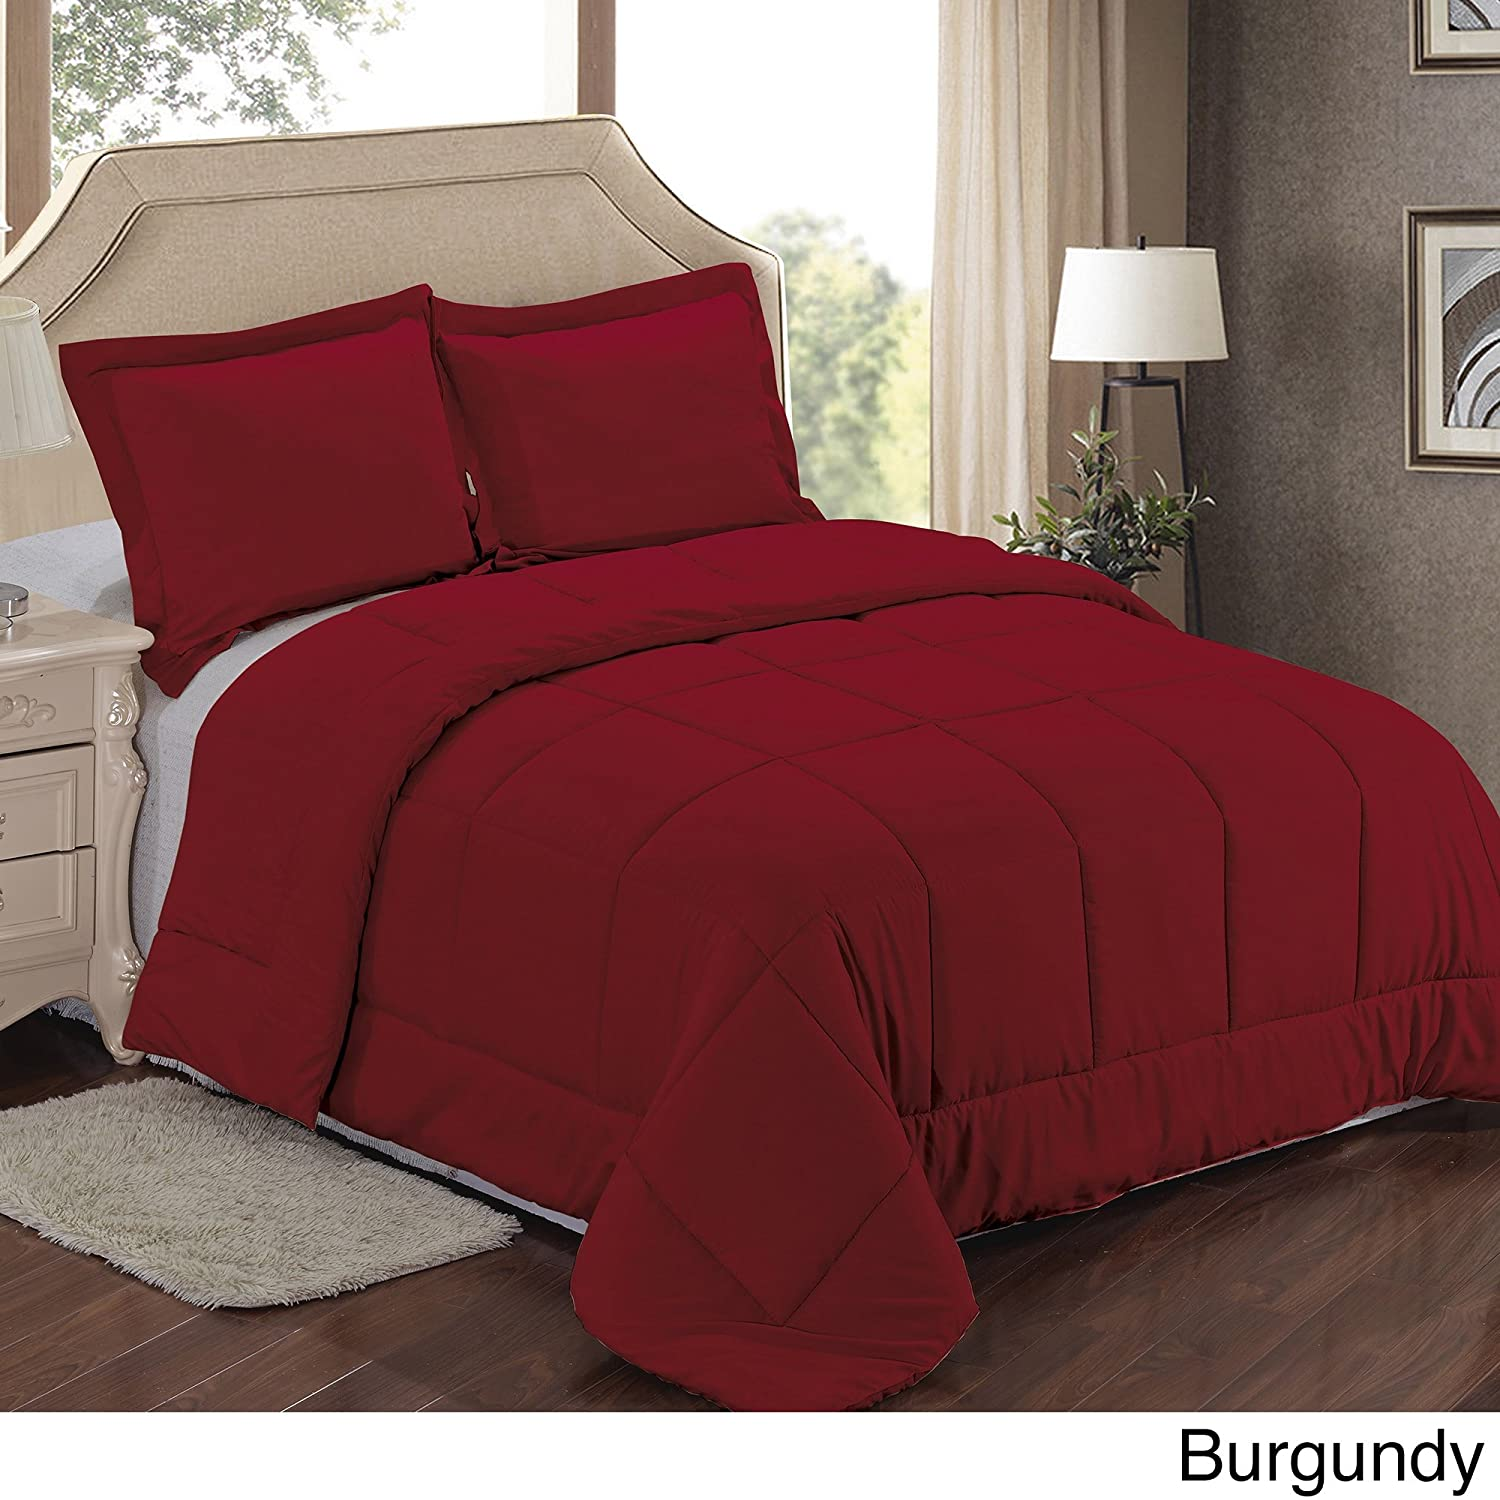 by warm jacquard sets accessorize set chester comforter pce